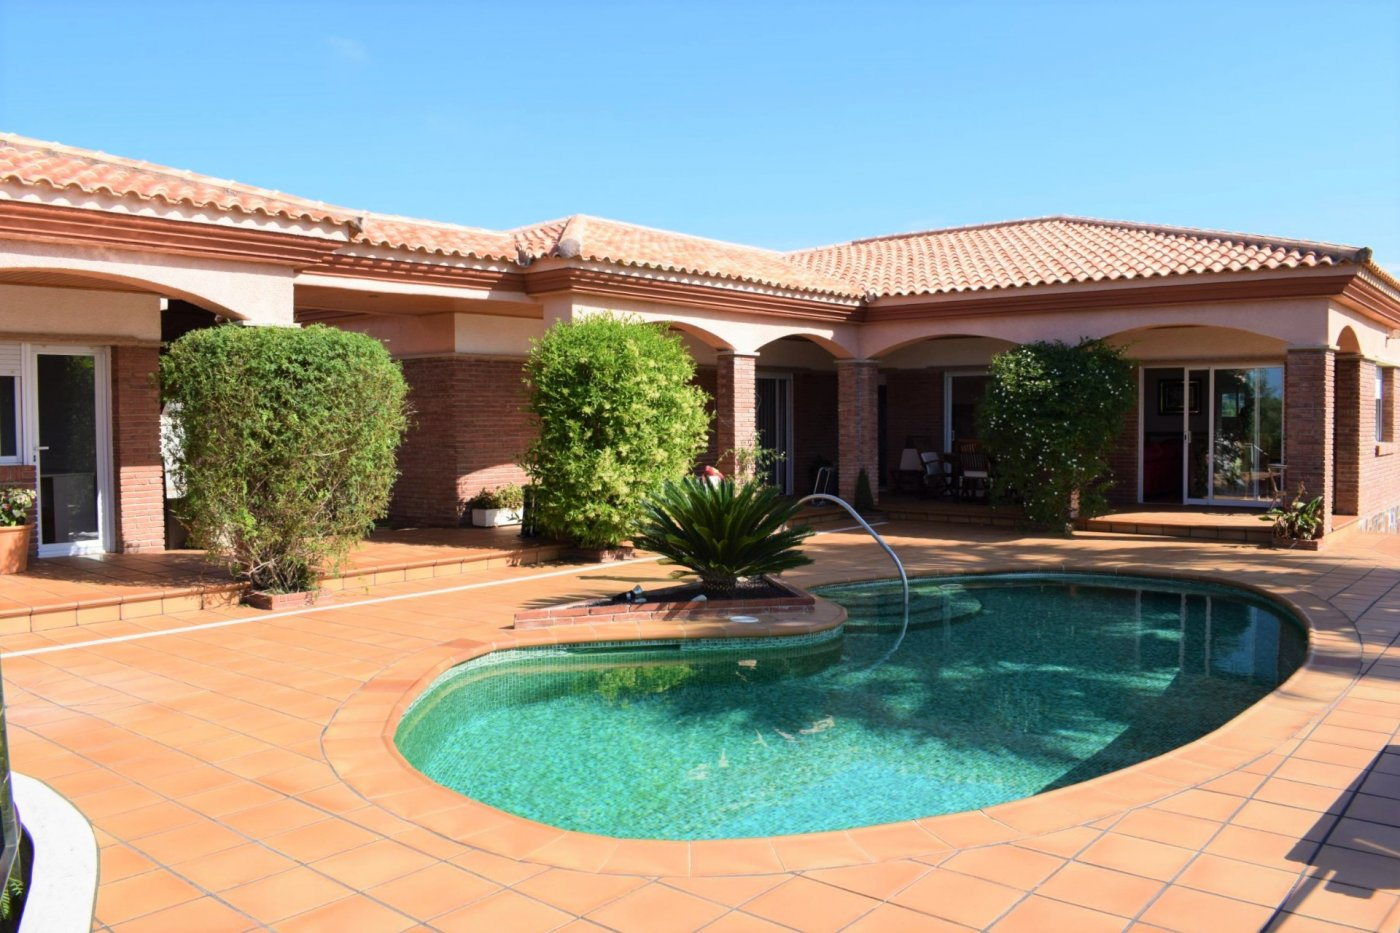 Chalet for sale in Segur de Calafell - Centro, Calafell